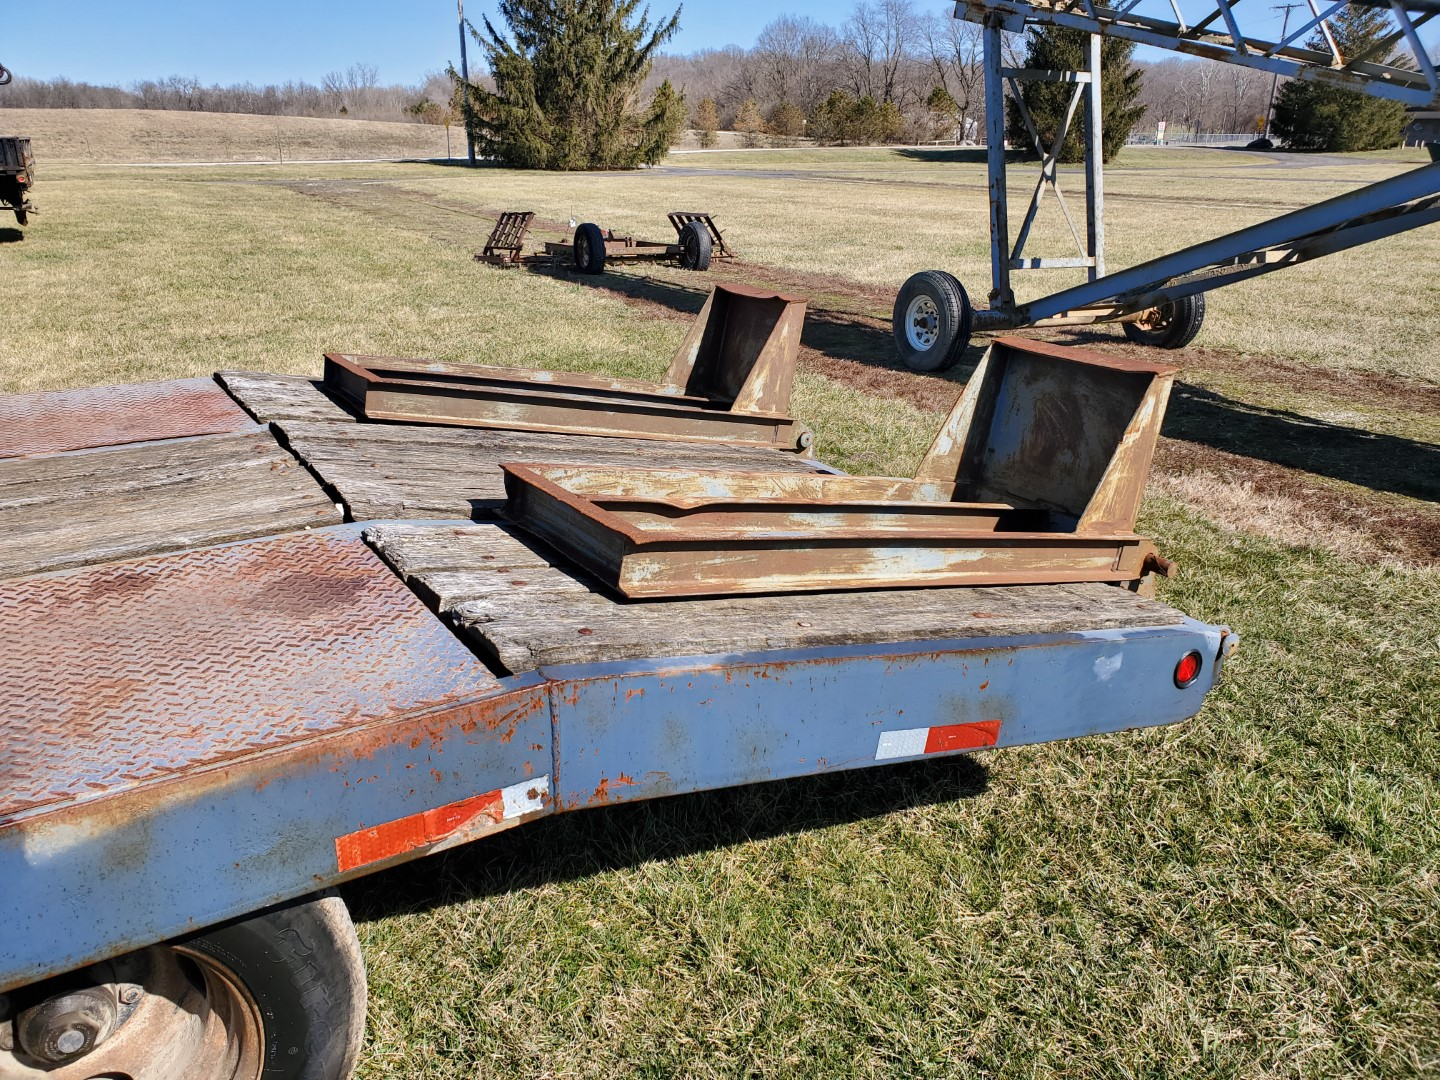 Lot 12 - Eager Beaver Model 10HA Equipment Trailer 19 ft. Main Deck w/5 ft Beaver-tail x 81 in Wide,